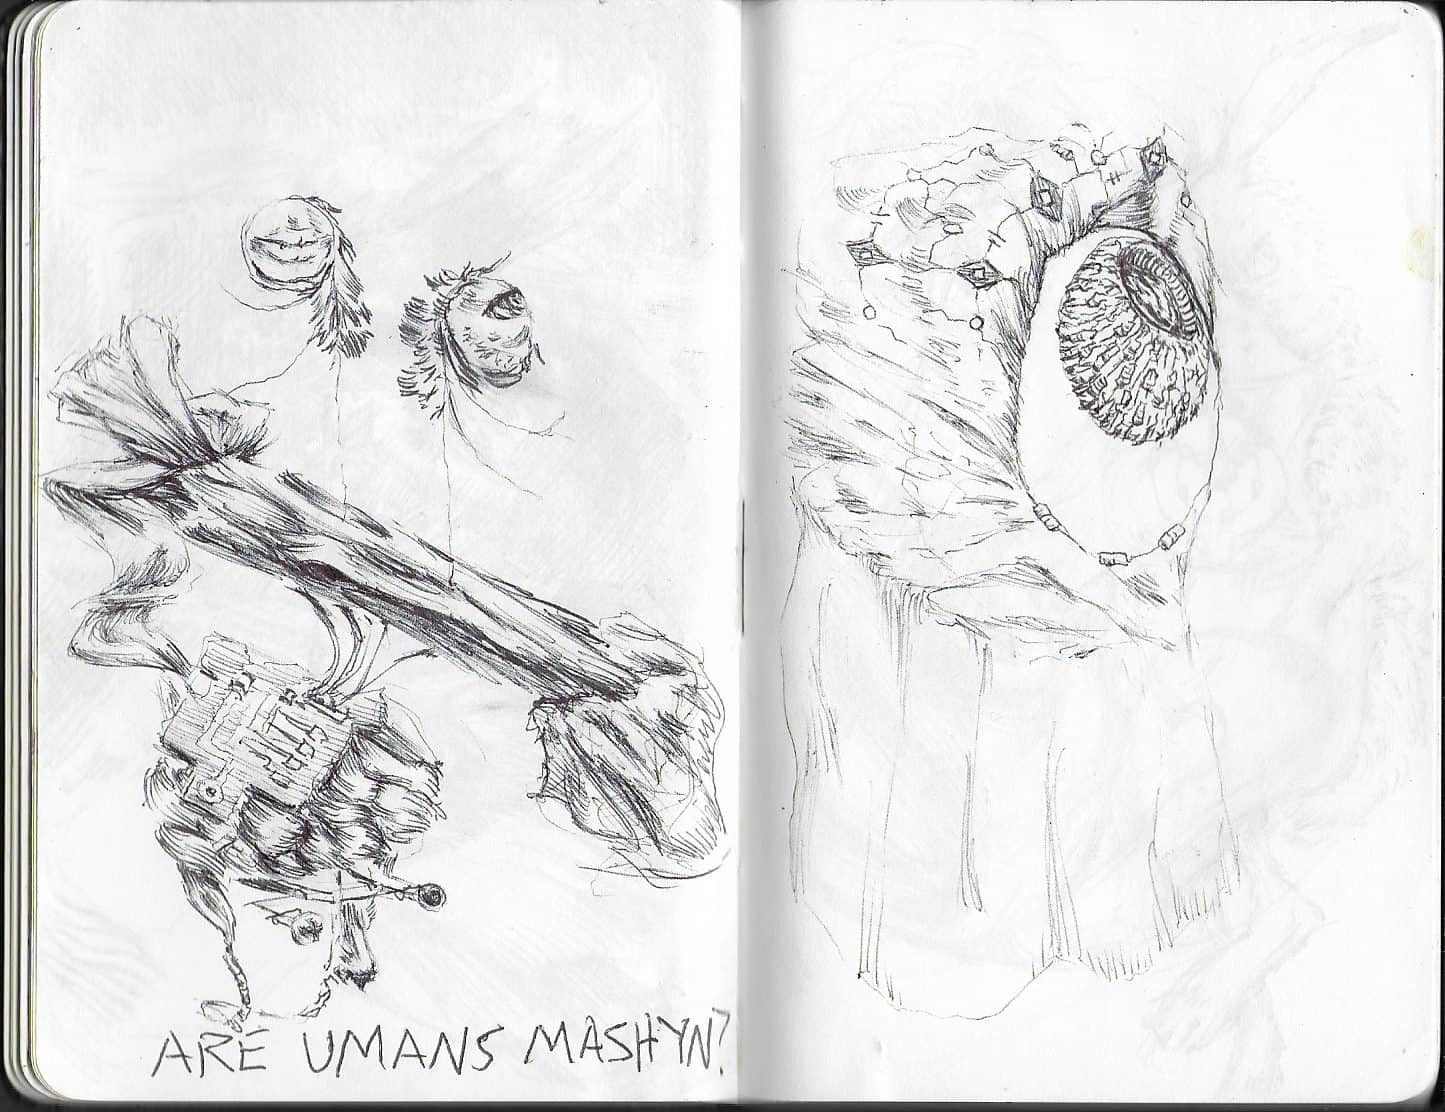 """drawing of abstract natural forms, on the right like a chicken creature with eyes on stalks with the text """"ARE UMANS MACHYN?"""", on the right eyeball-like"""